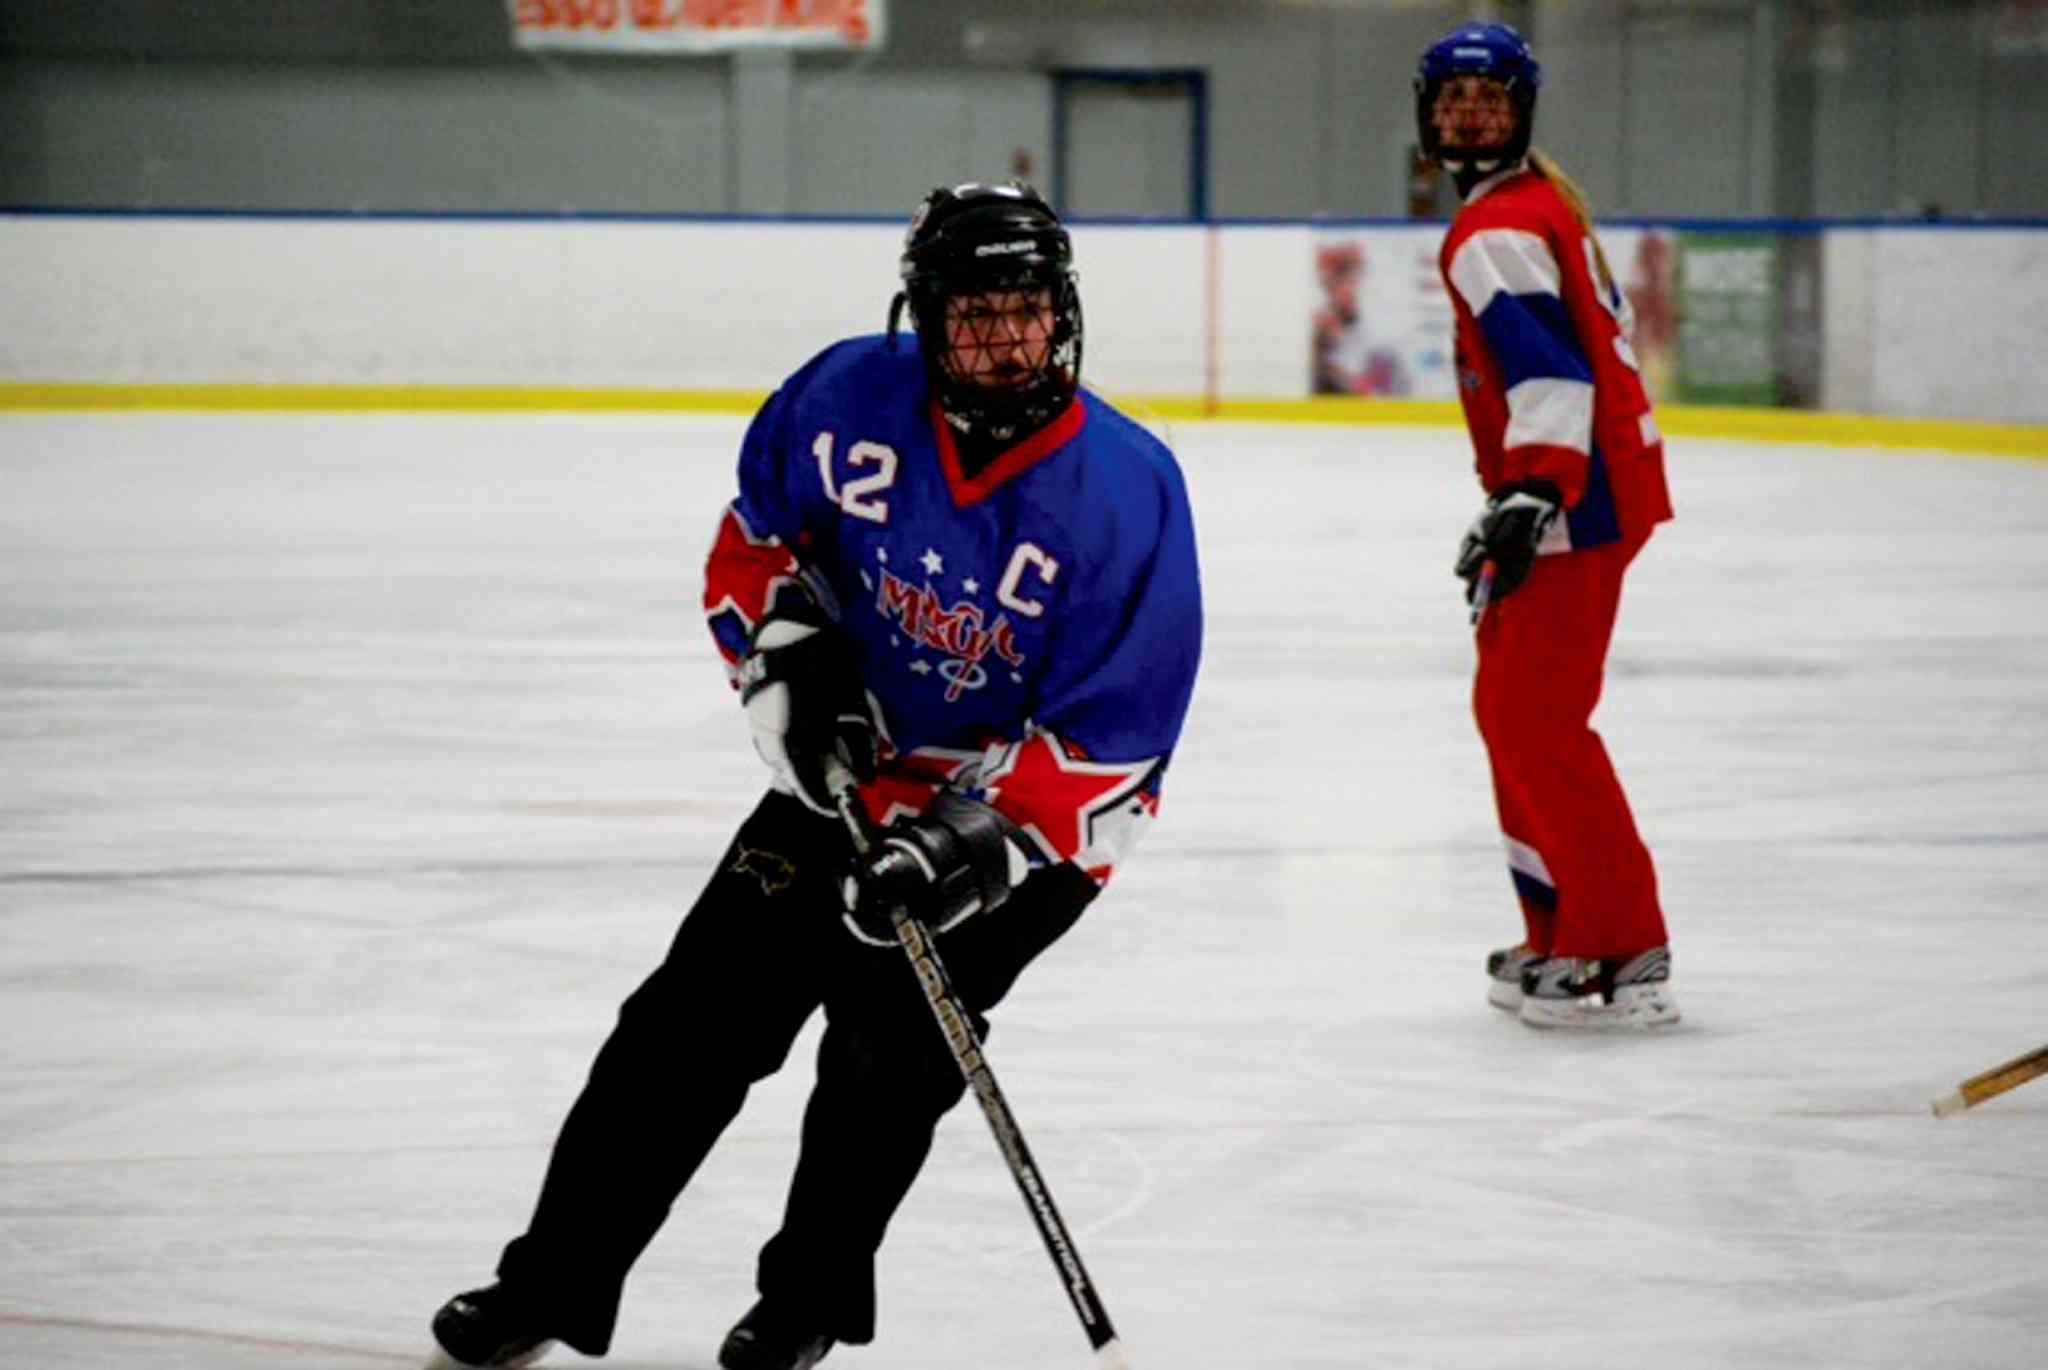 Carleigh Petersen, who lives in St. James, competed in the Western Canadian Ringette Championships with the Manitoba Magic U14 AA team.